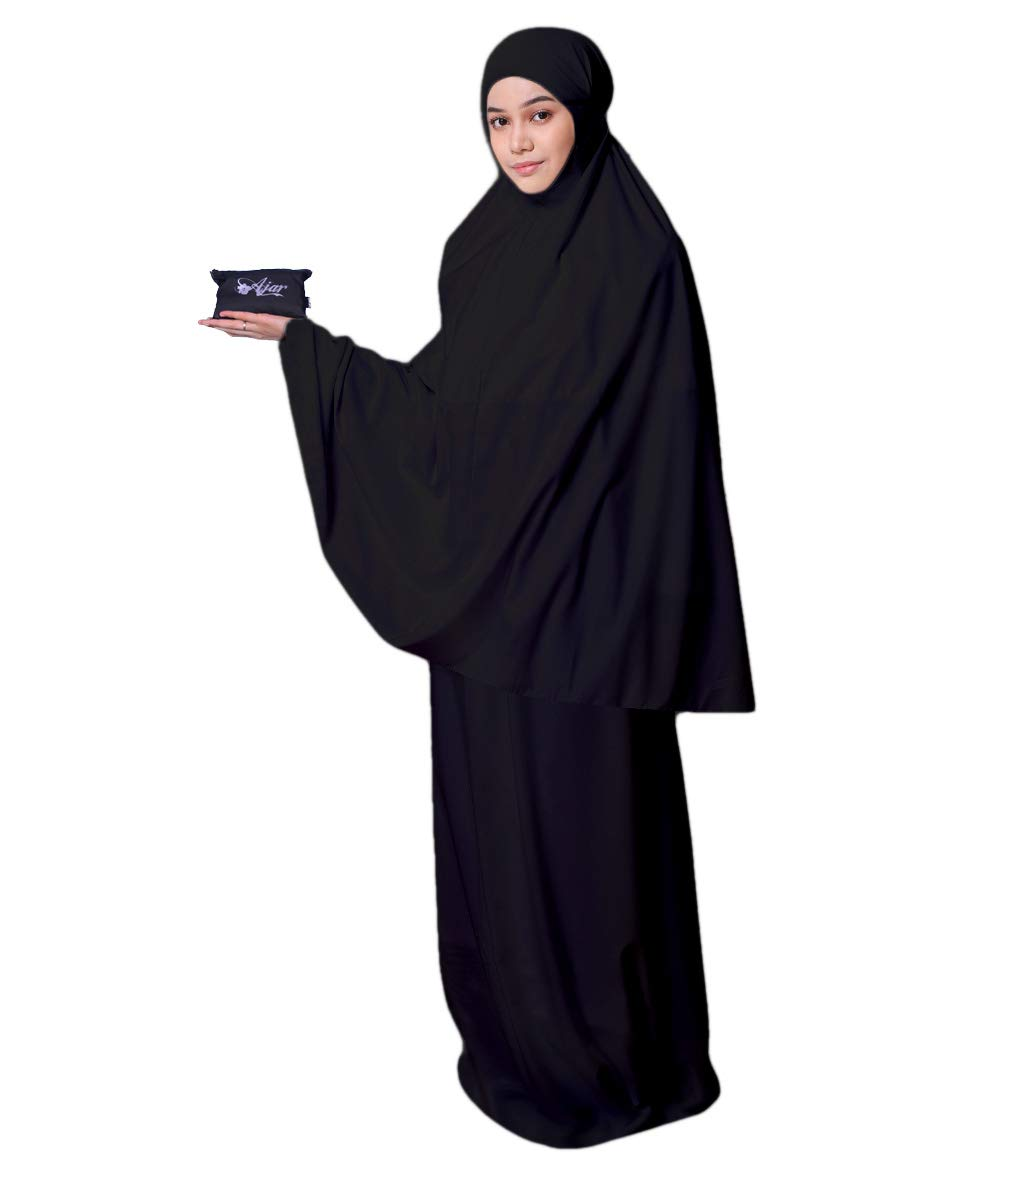 Muslim Women's Prayer Dress Pocket-Size Hijab Scarf Skirt Islamic Abaya by AJAR by Ajar (Image #1)